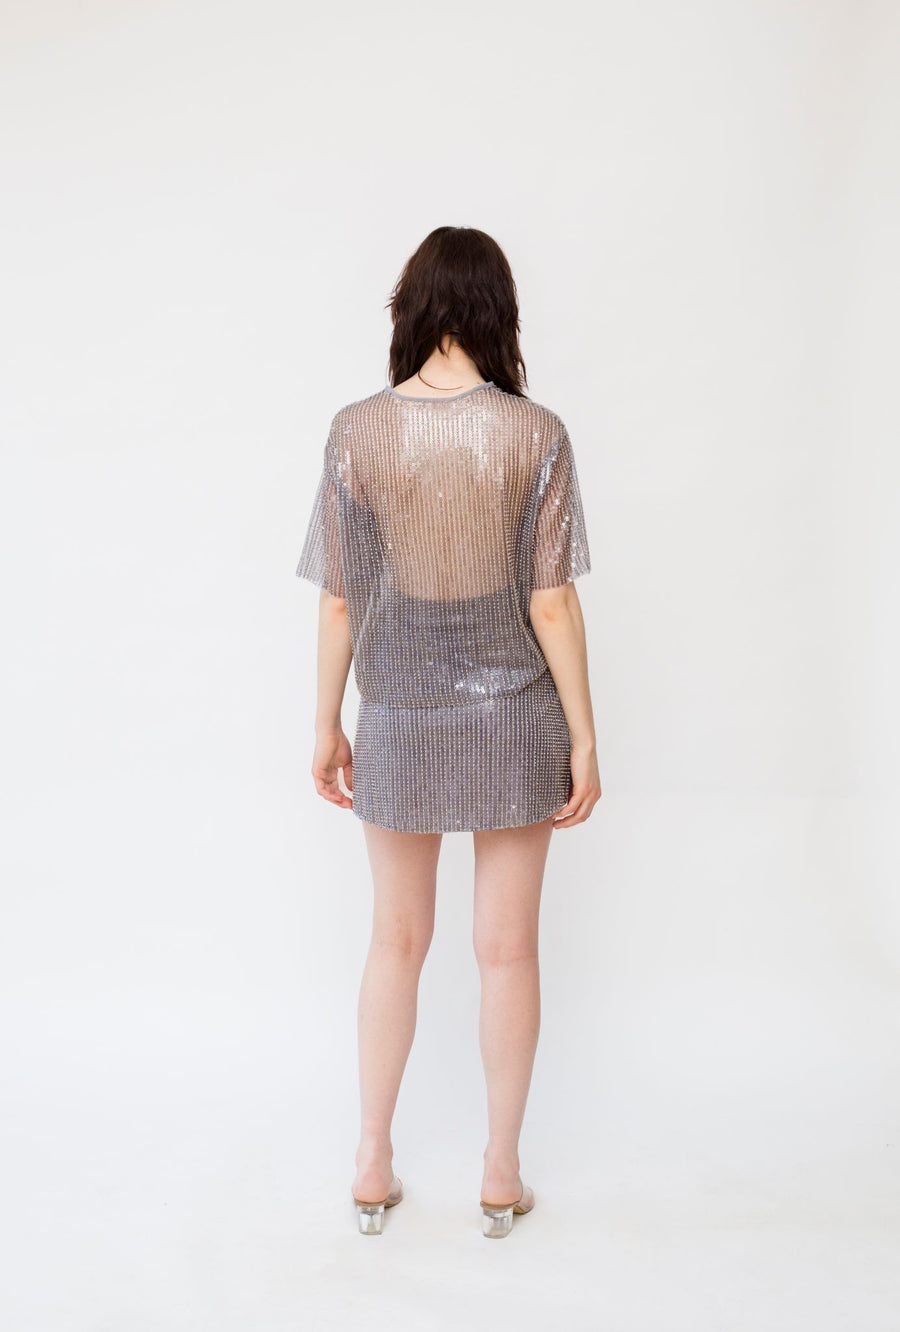 Shadow Sequin Top and Mini Skirt